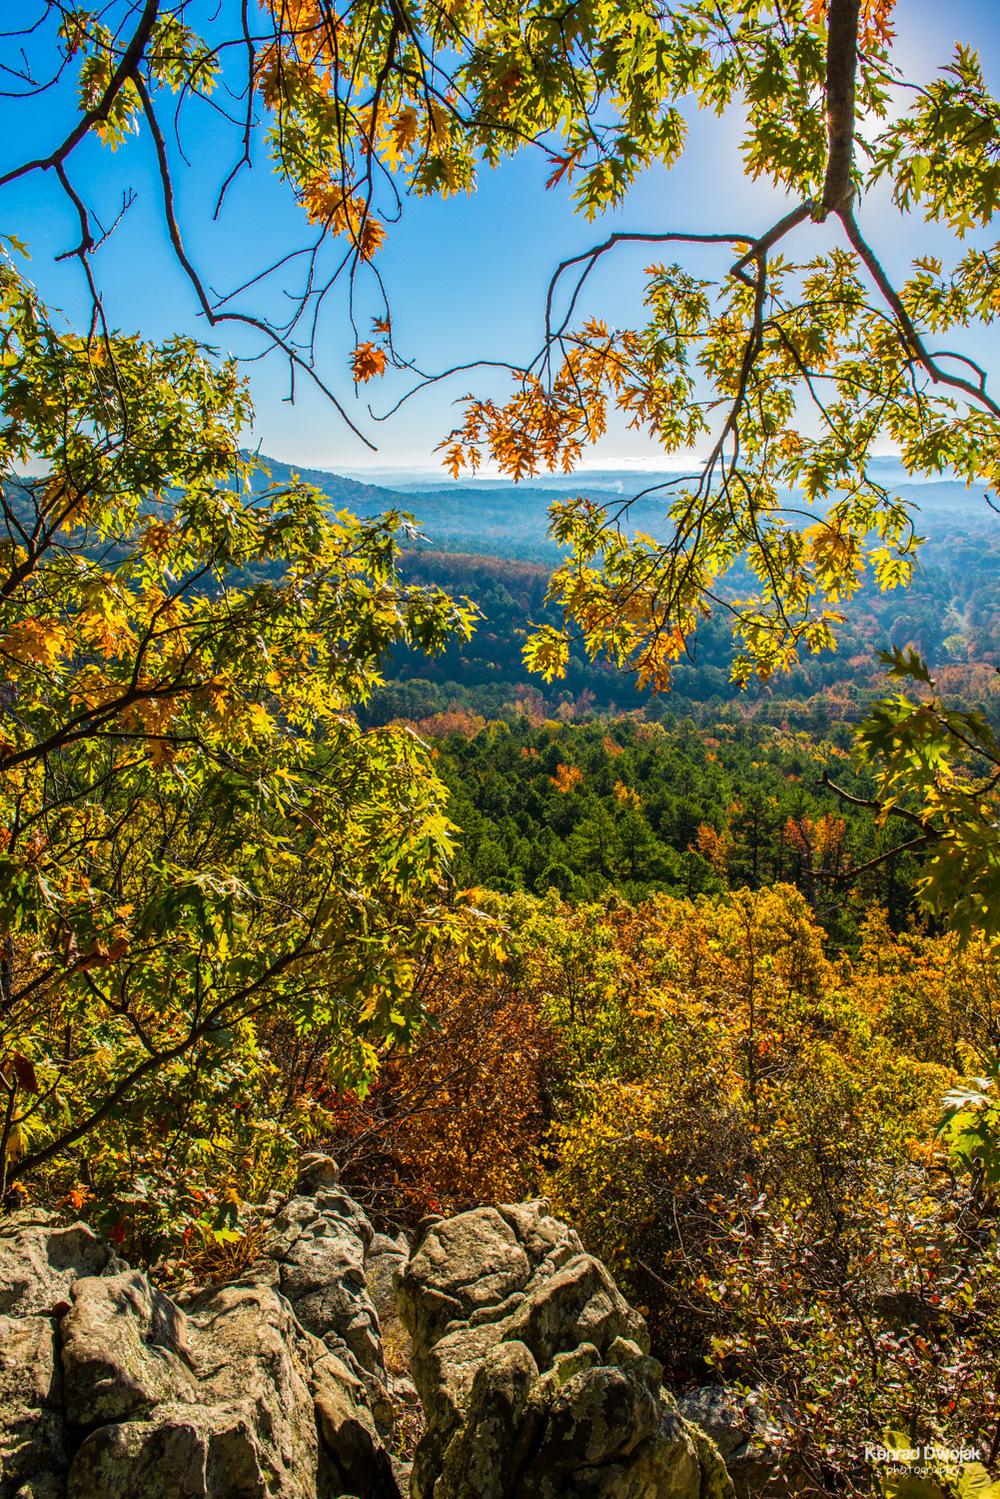 Fall foliage view while climbing the Pinnacle Mountain